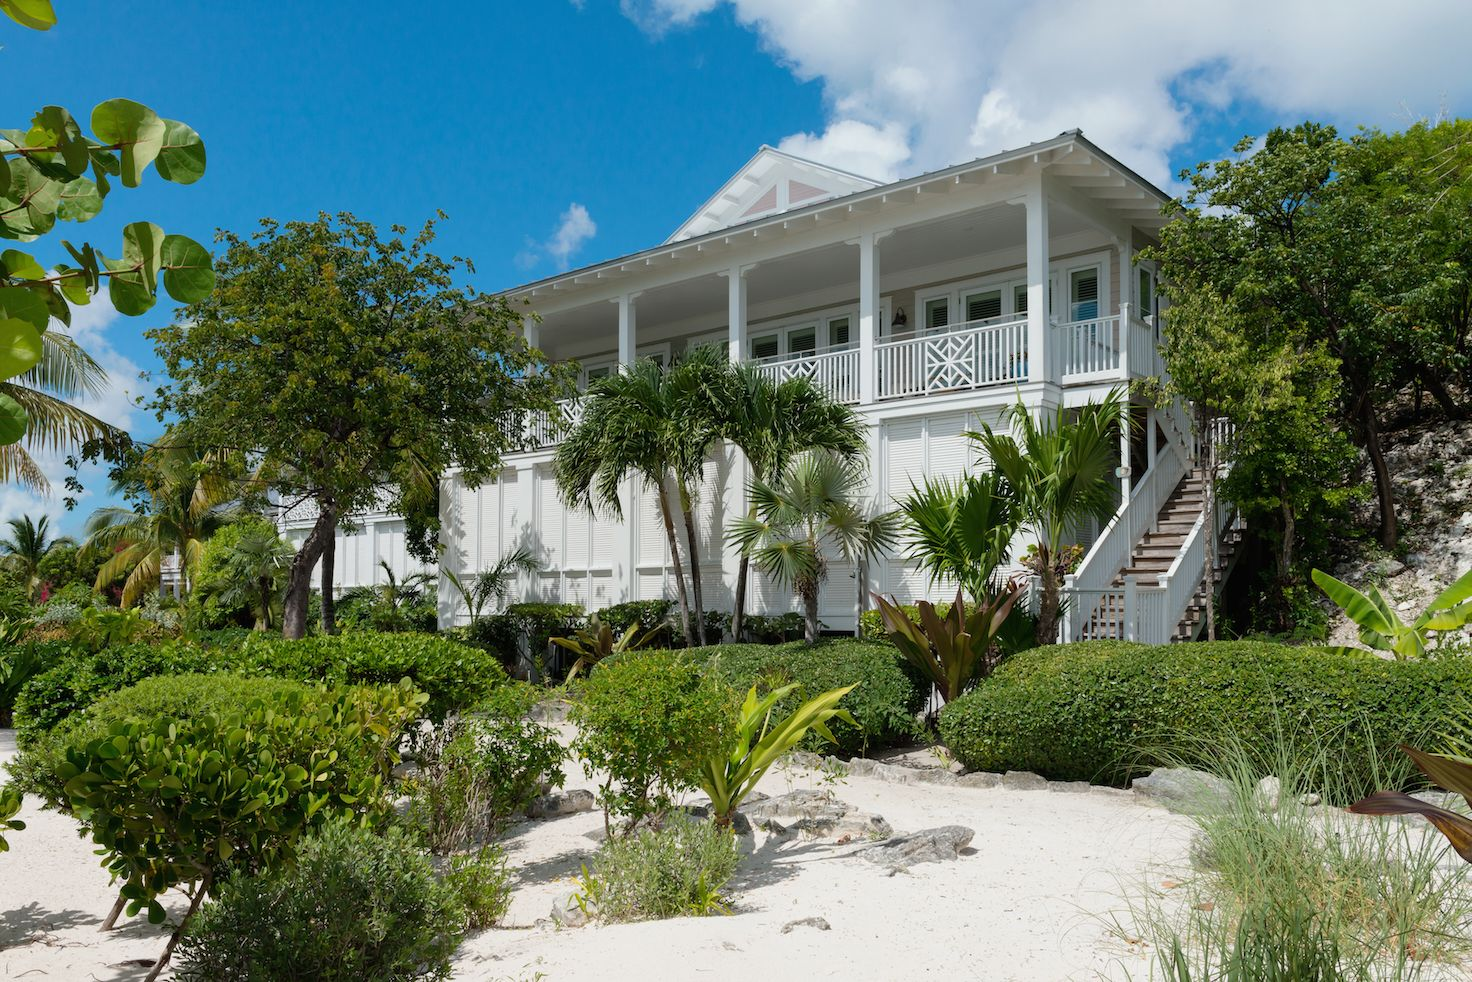 Beach House Rentals - Rent A Beach House